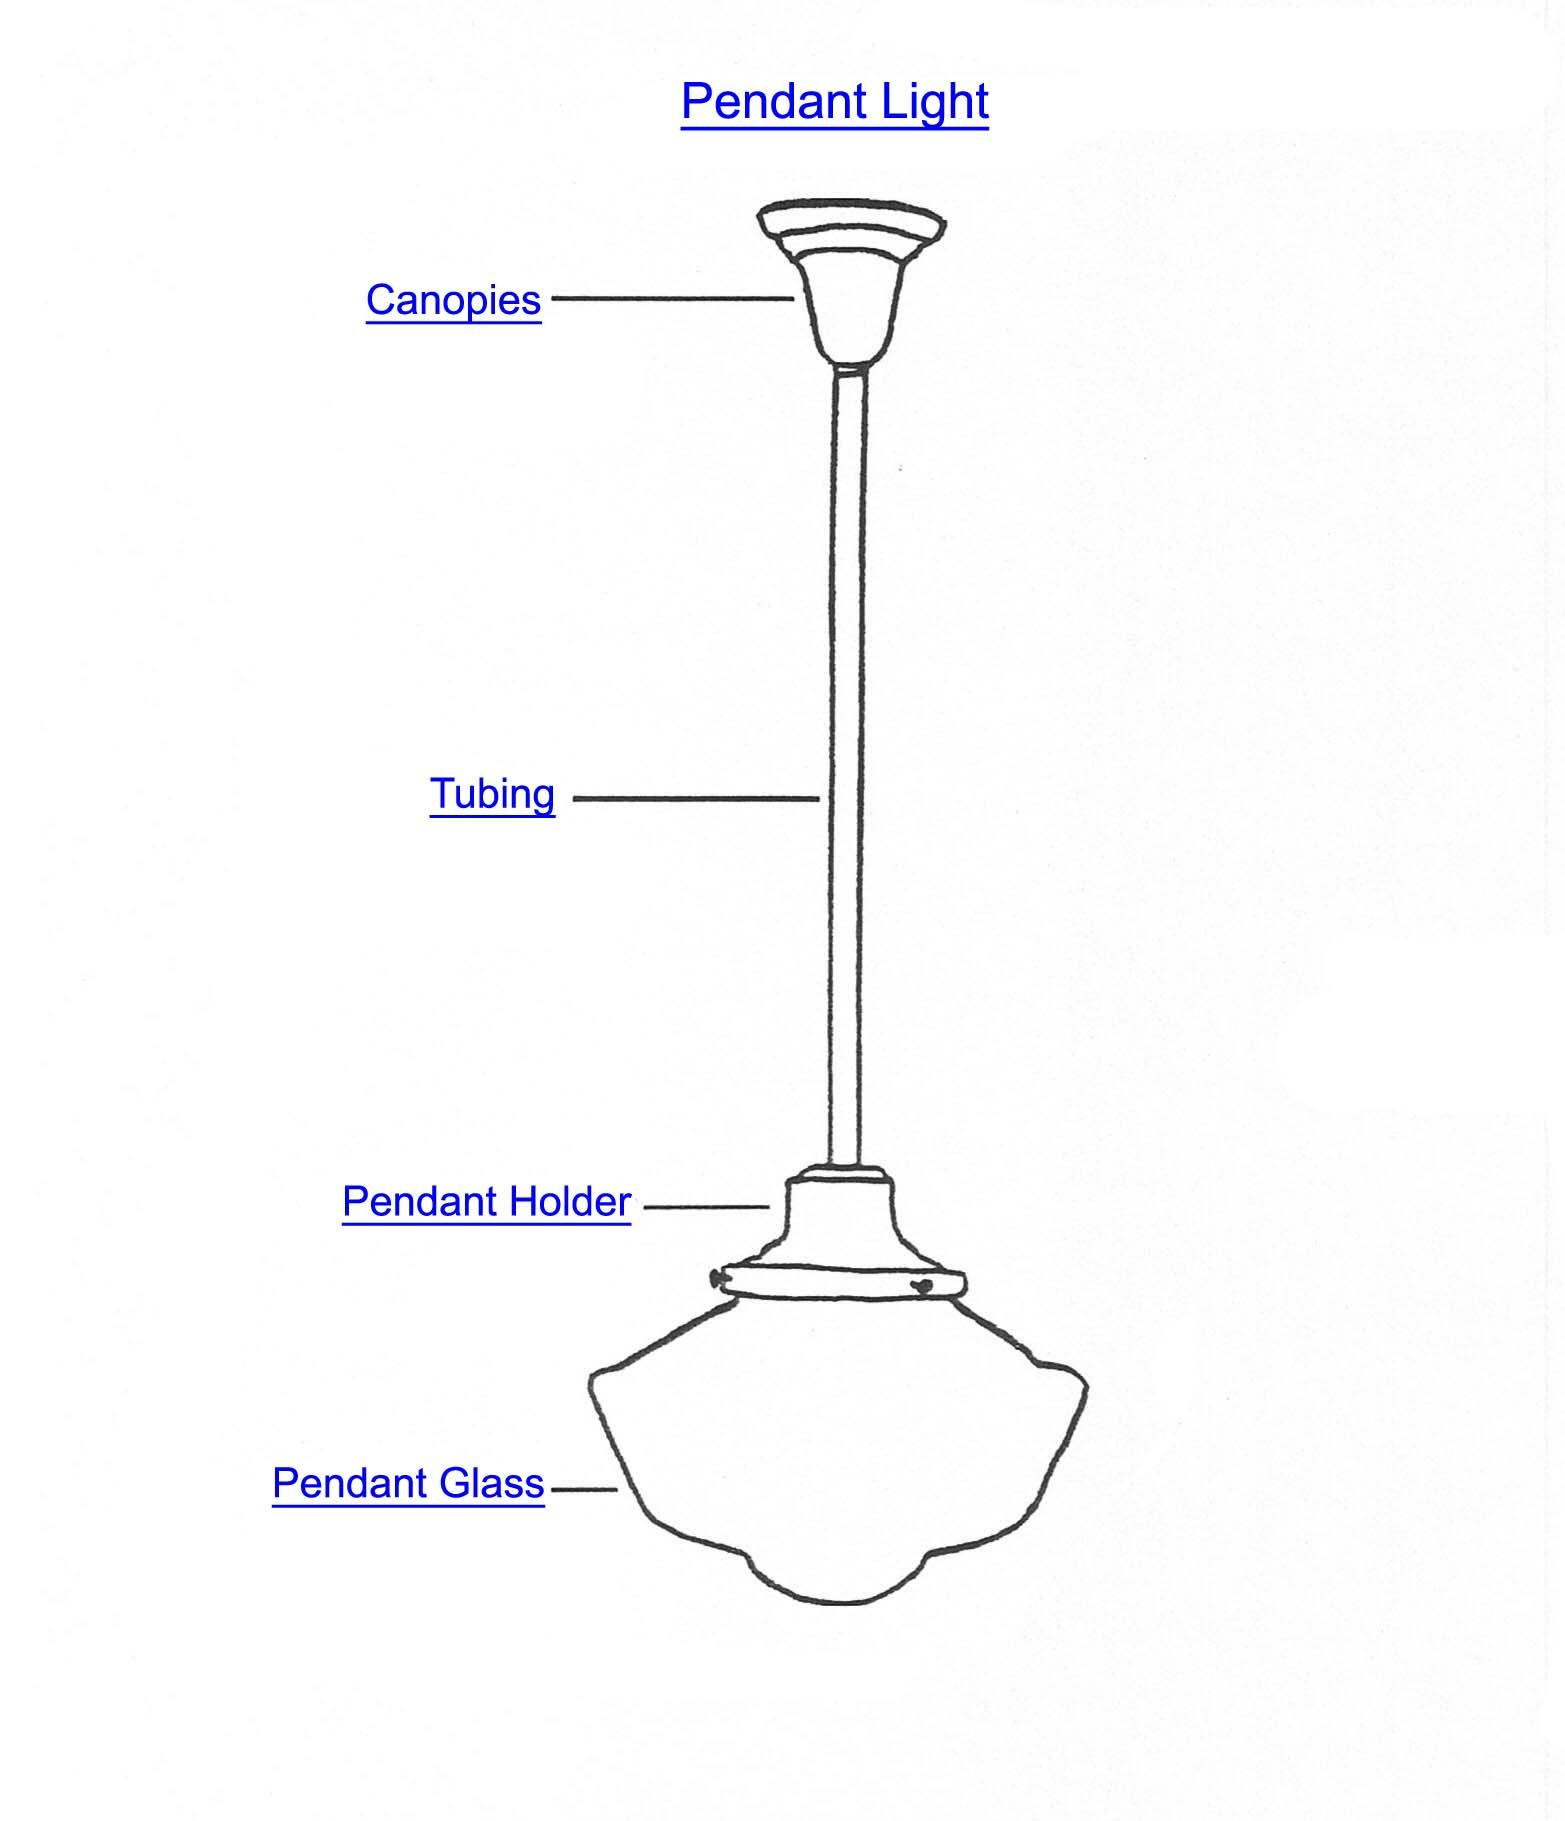 Pendant light parts by name kitchen lighting project pinterest pendant light parts by name amipublicfo Gallery